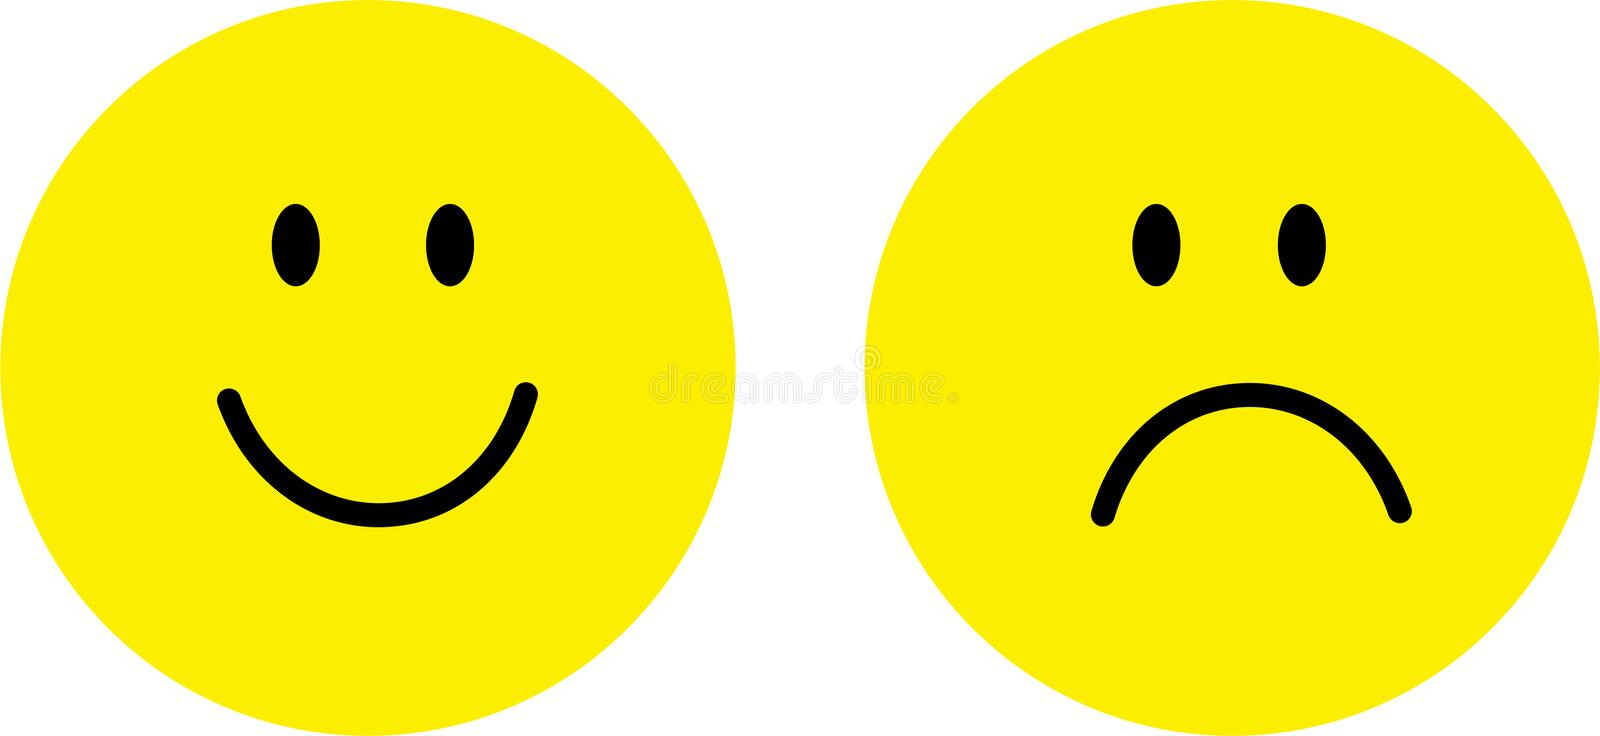 Happy and sad face vector illustration